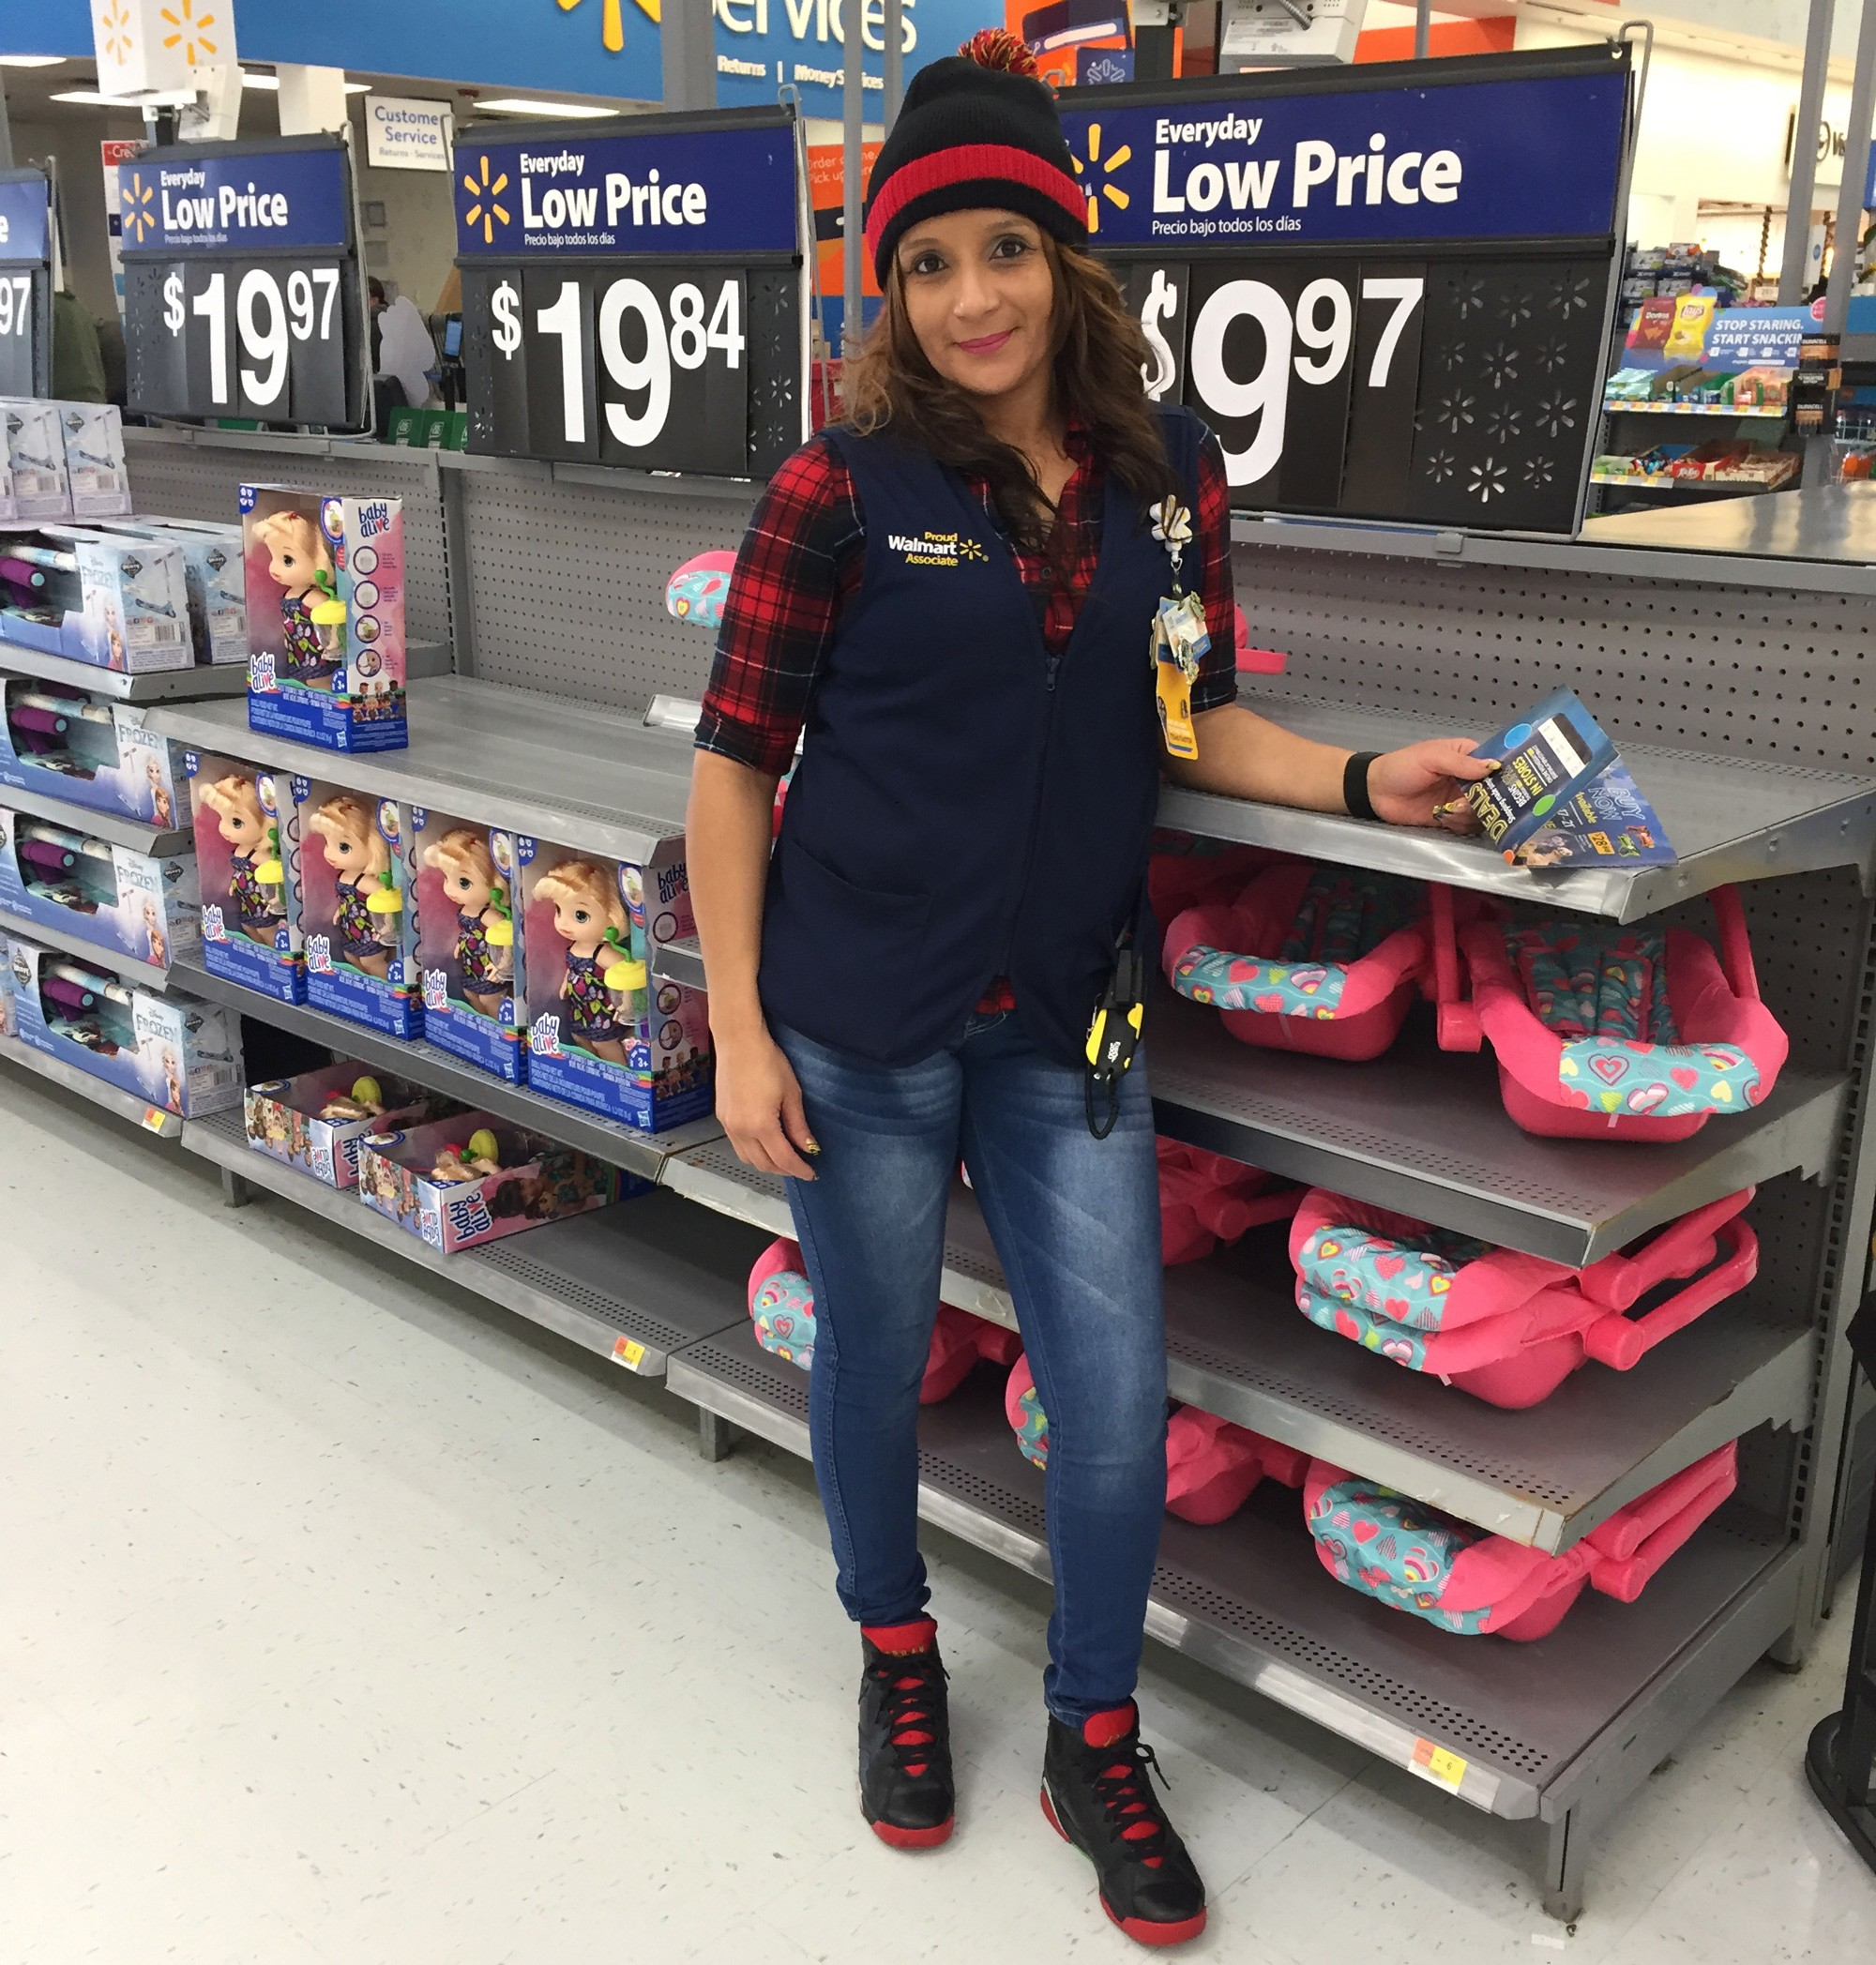 Enid Ruiz, an associate in a Walmart Supercenter in Secaucus, New Jersey